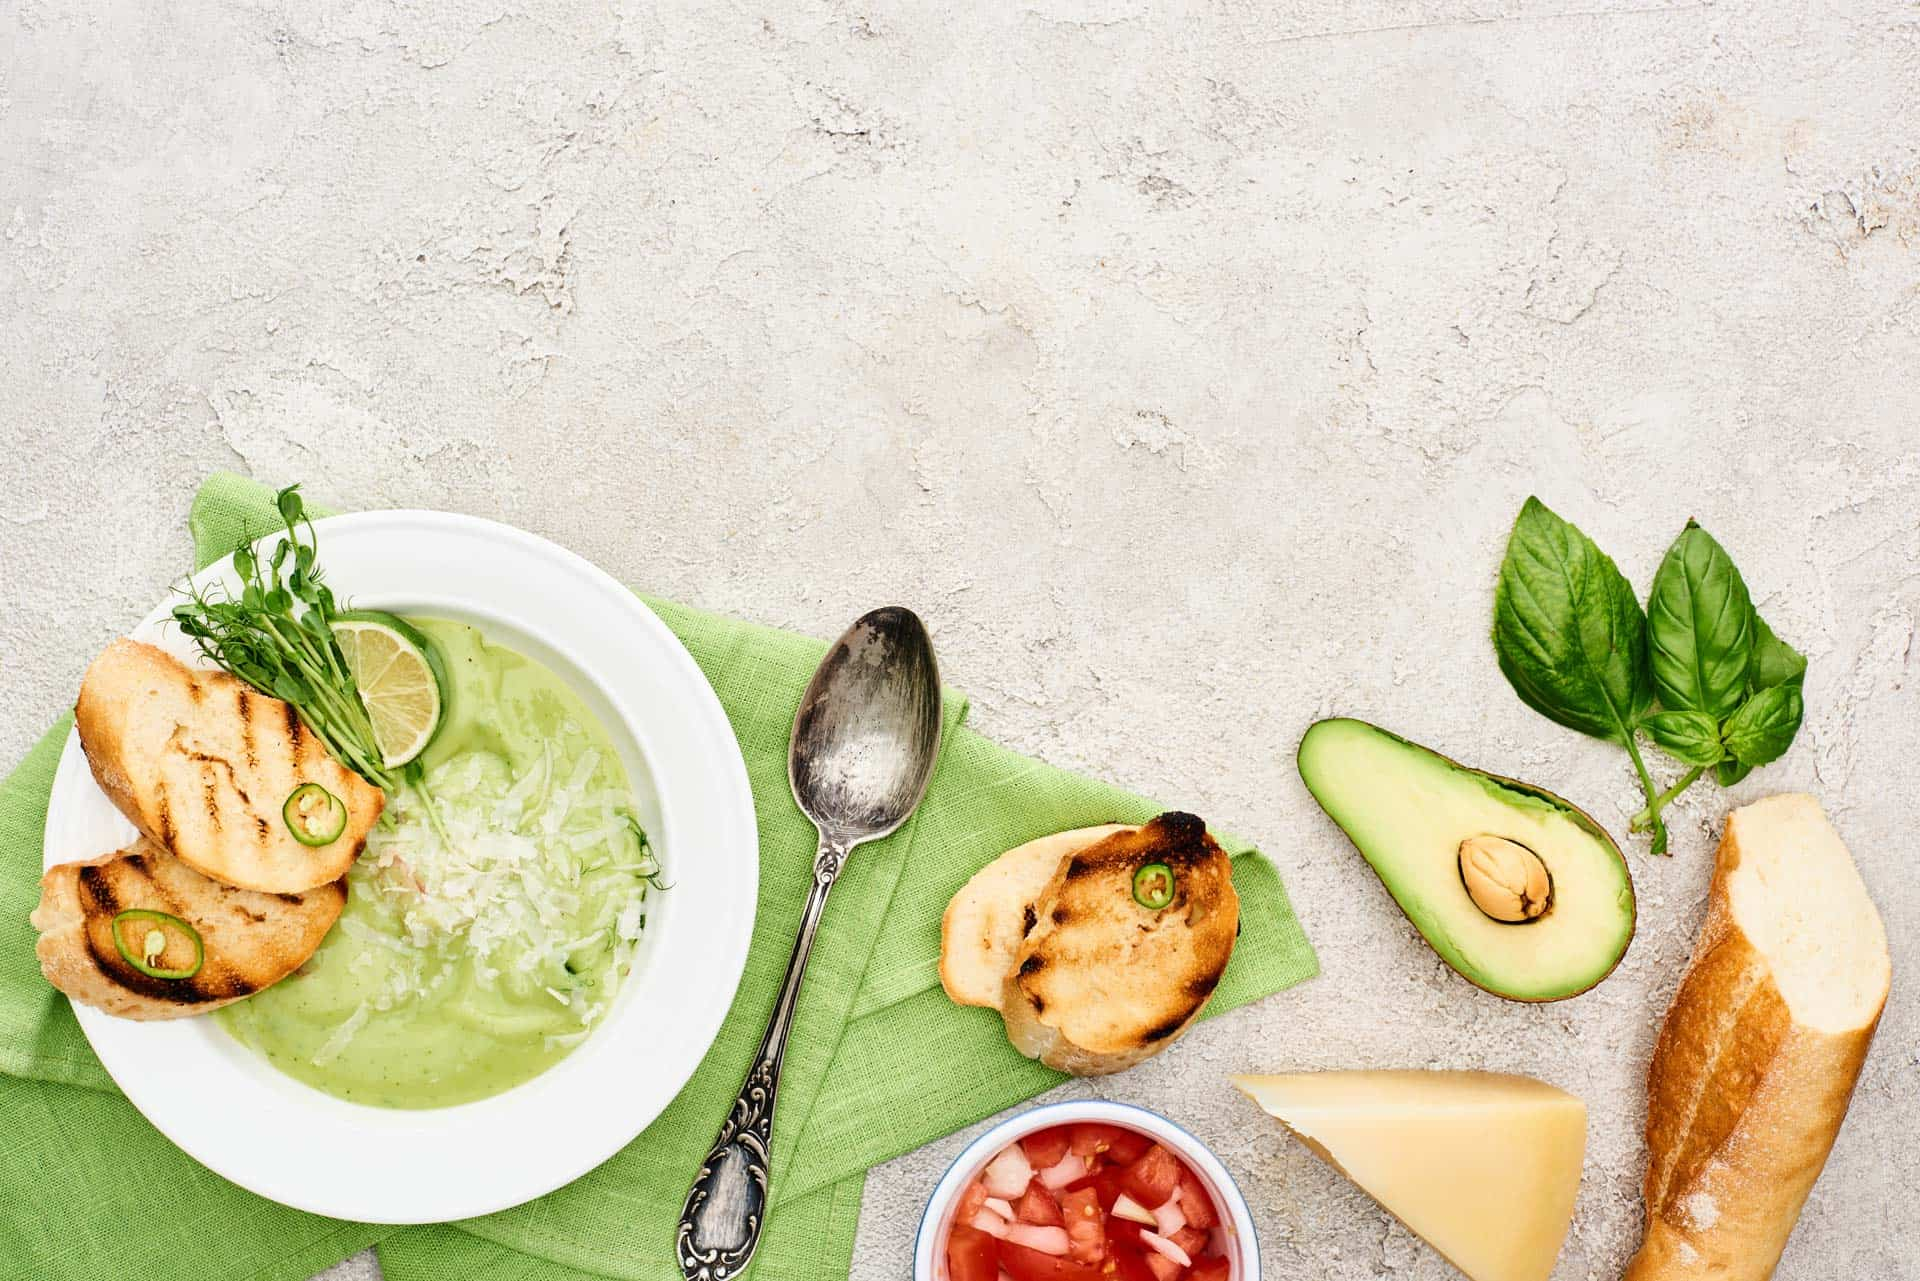 Low impact cooking with avocado, basil, bread, and soup